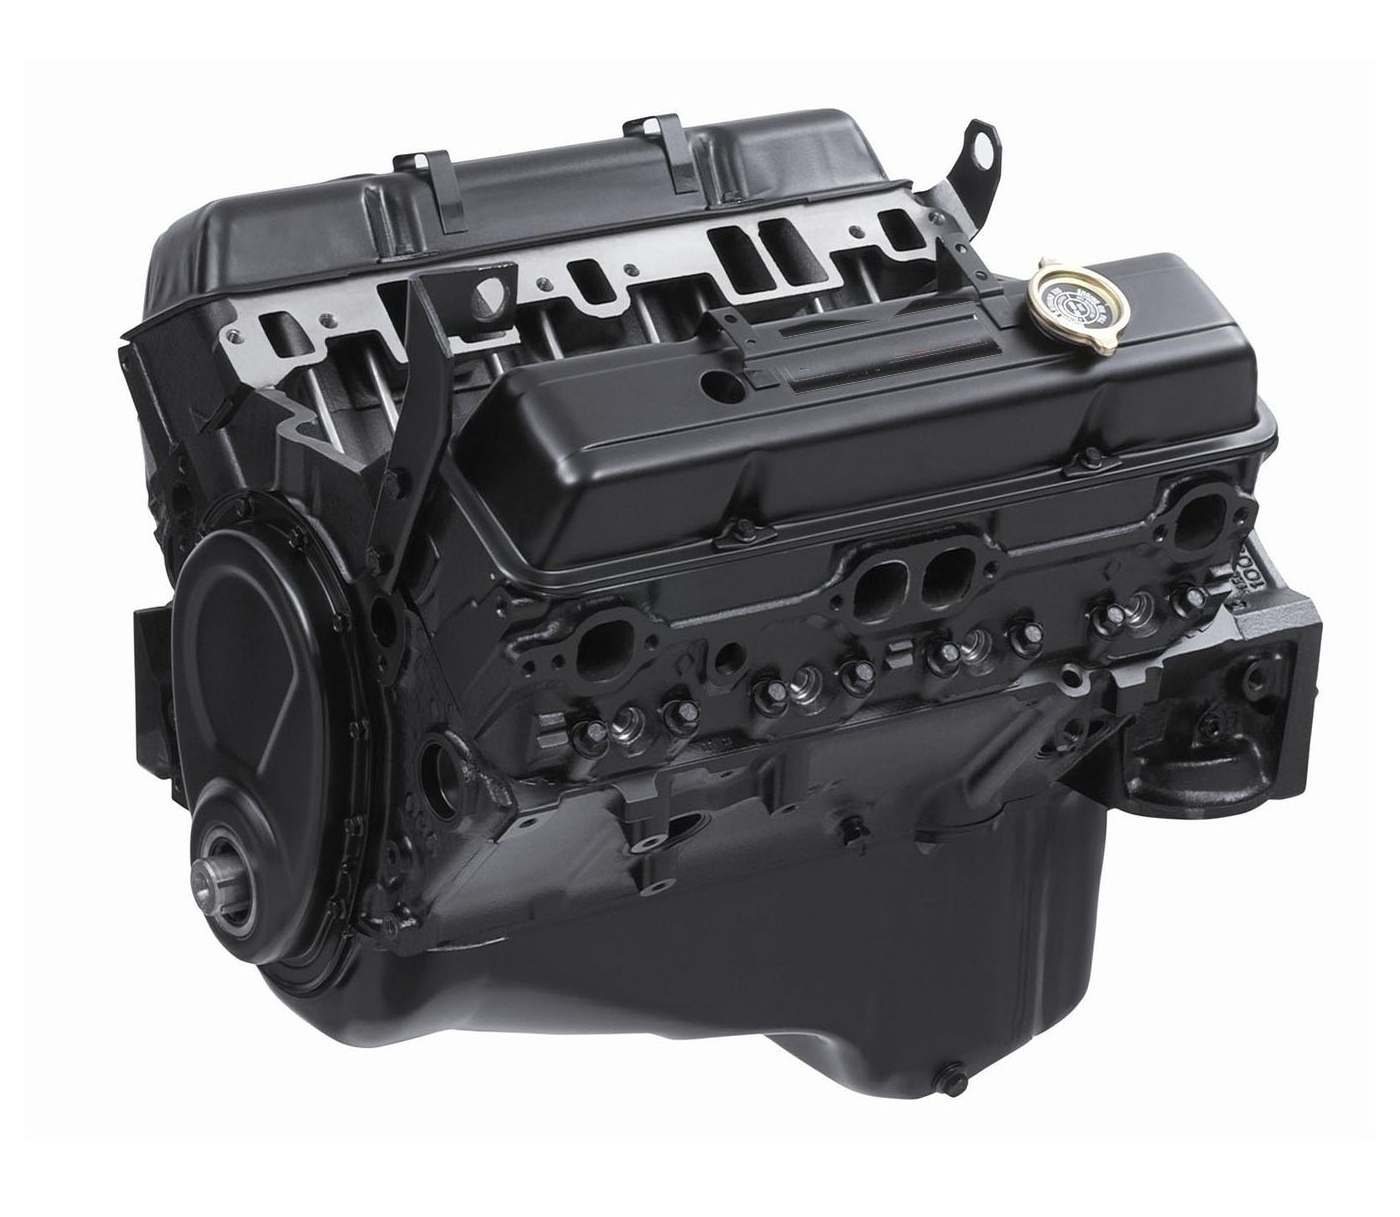 5.7L Reman Long Block Engine For Chevrolet C3500